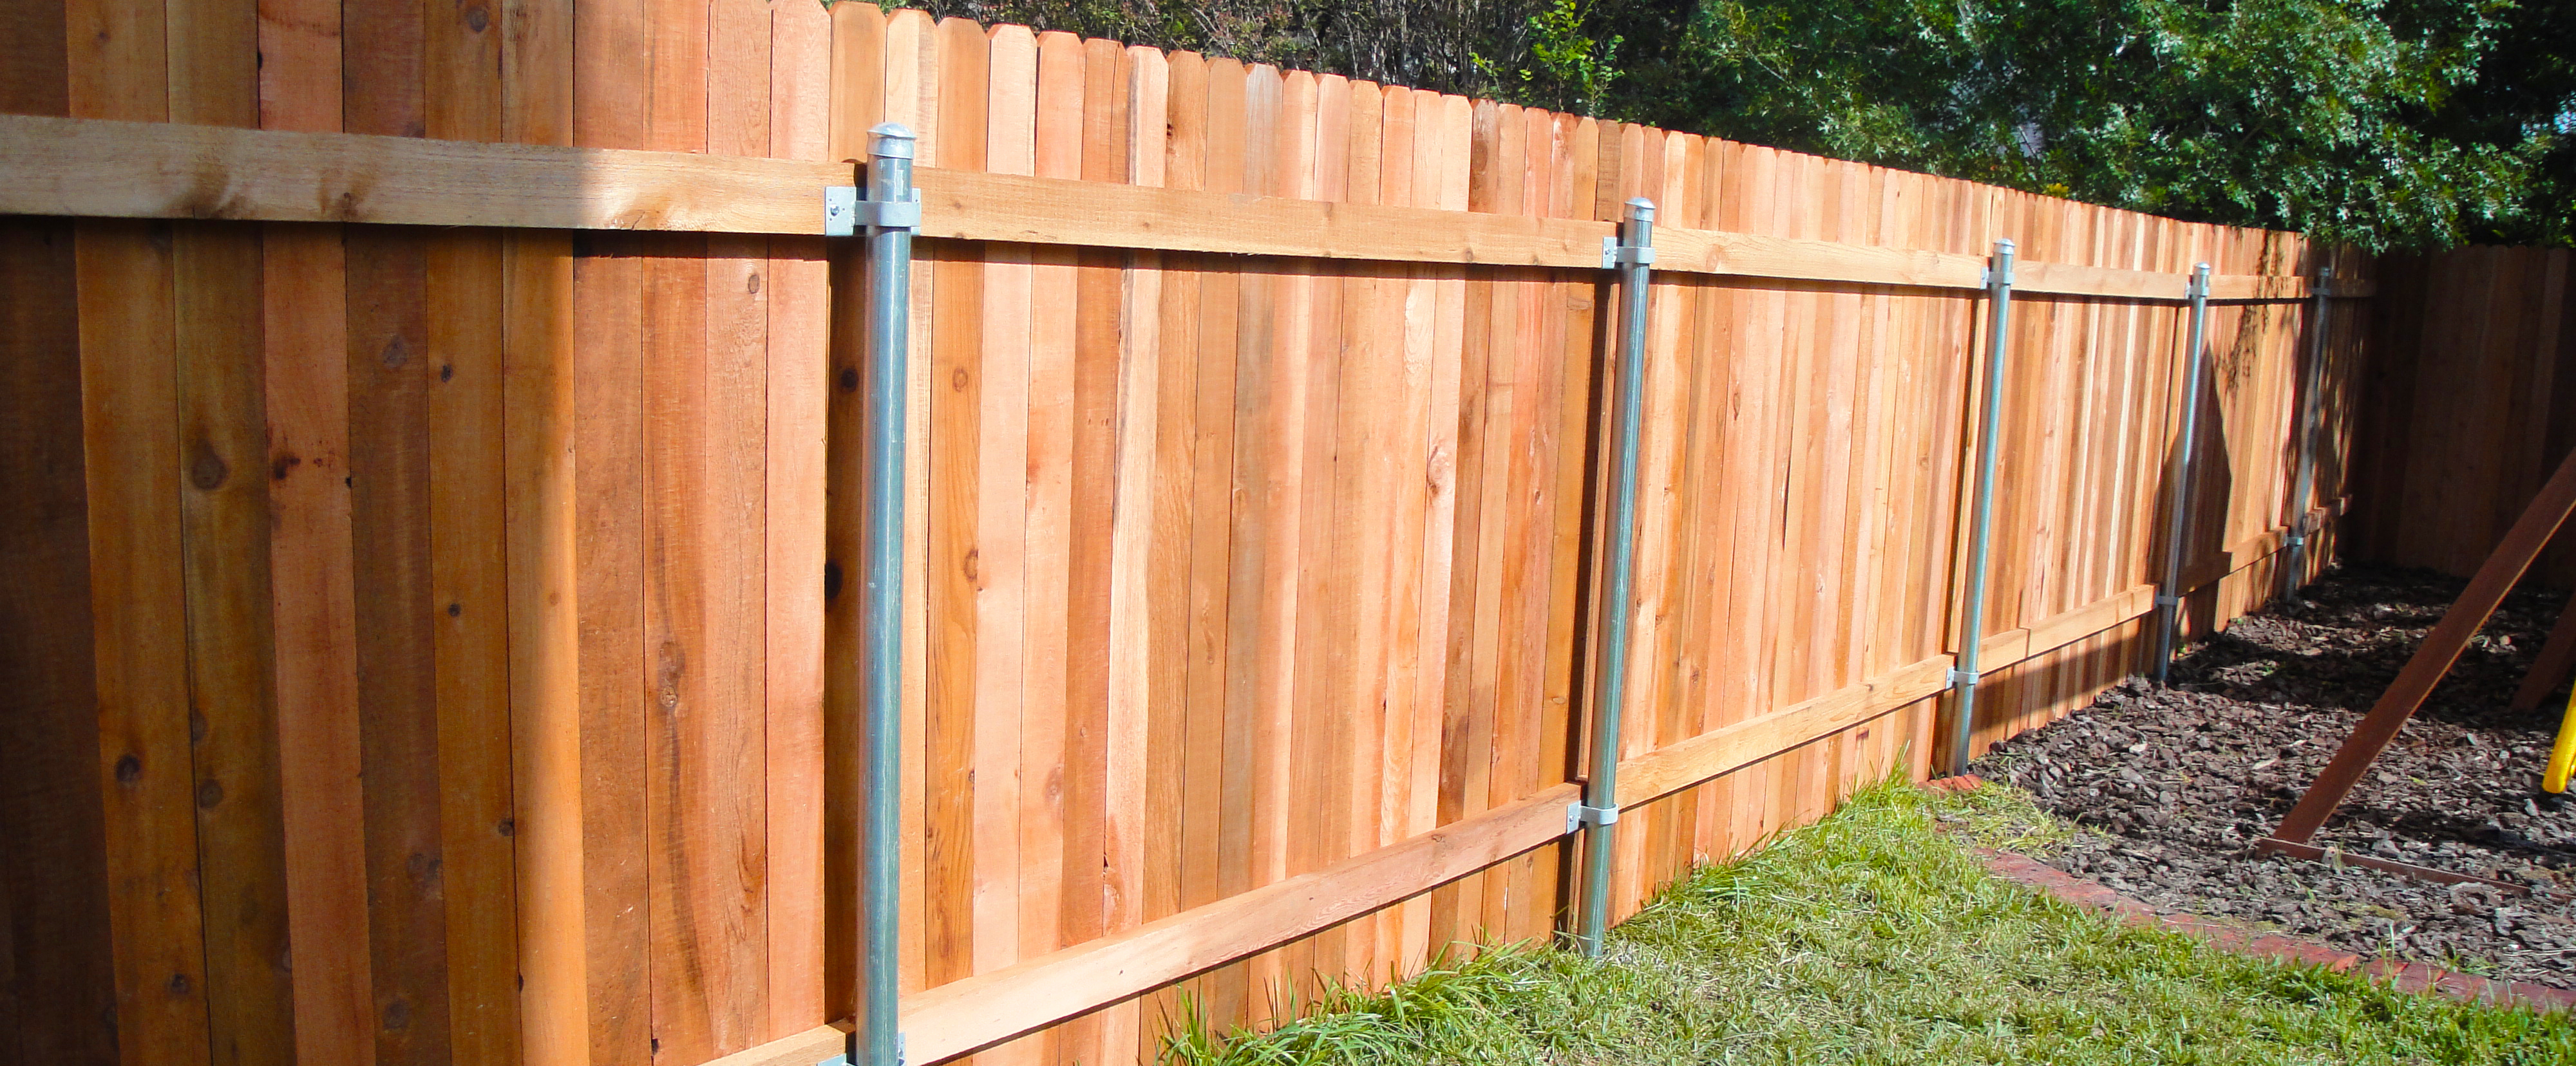 Wood Privacy Fences Austin Tx Ranchers Fencing Landscaping in Fence Backyard Cost